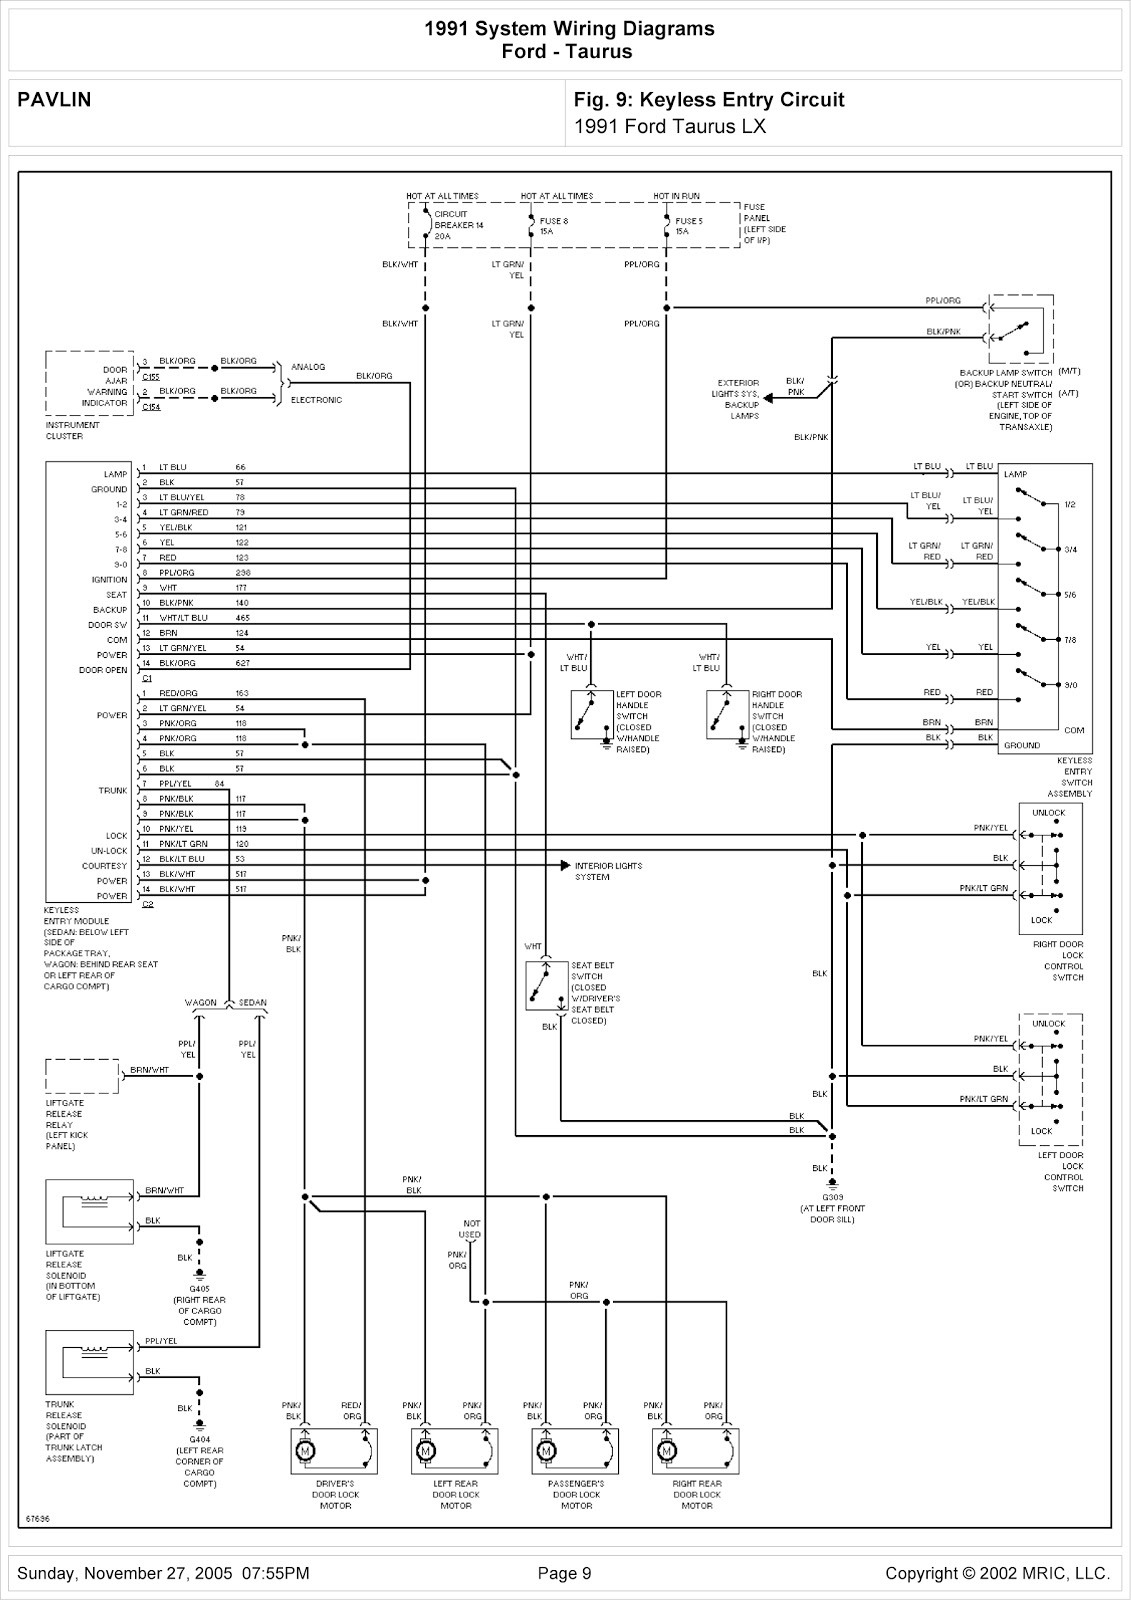 1991    Ford       Taurus    LX System Wiring    Diagram    for Keyless